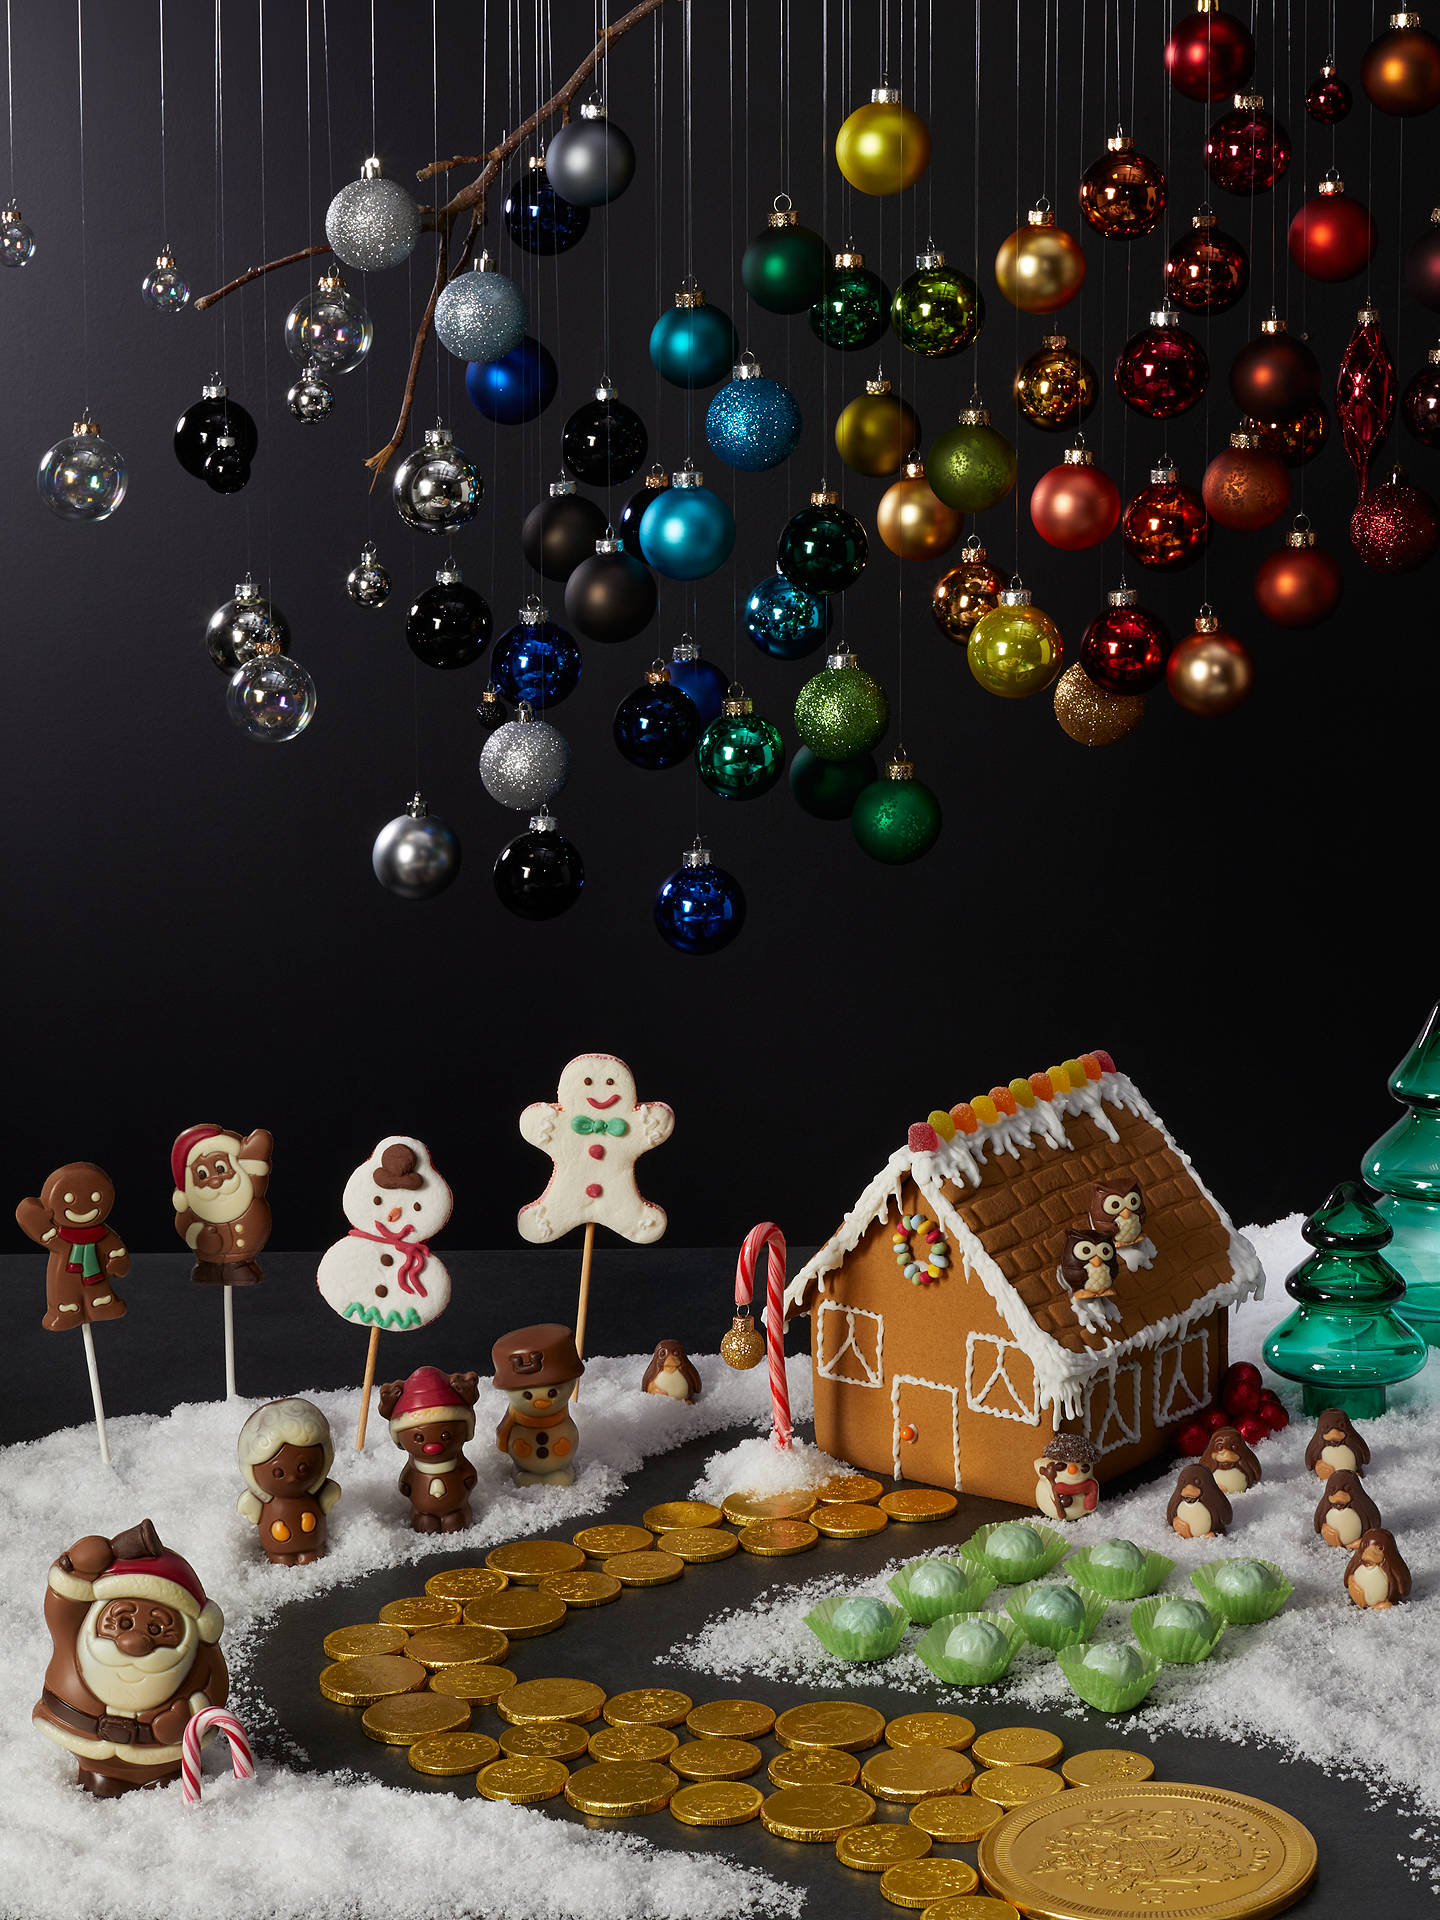 Marvelous Build Your Own Gingerbread House 1 1Kg Download Free Architecture Designs Rallybritishbridgeorg